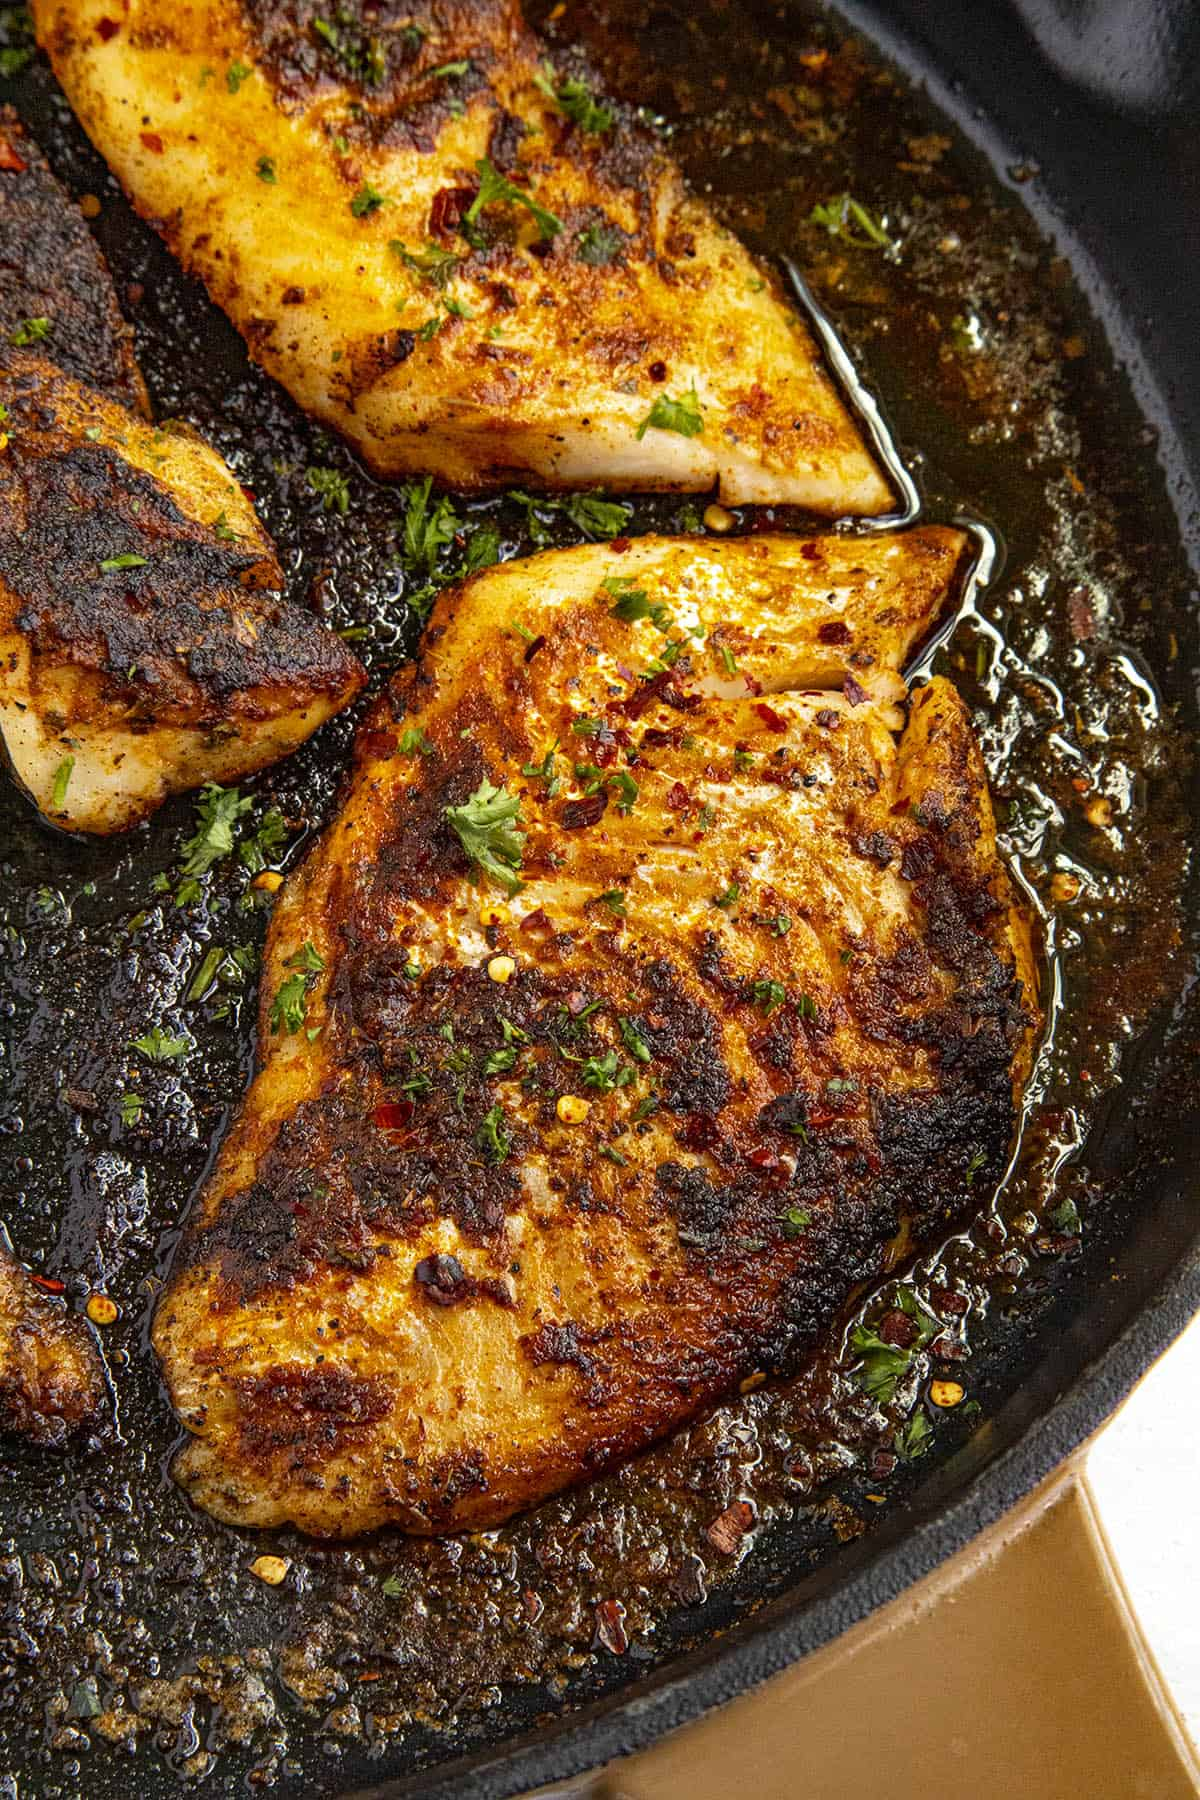 Spicy Blackened Fish in a pan